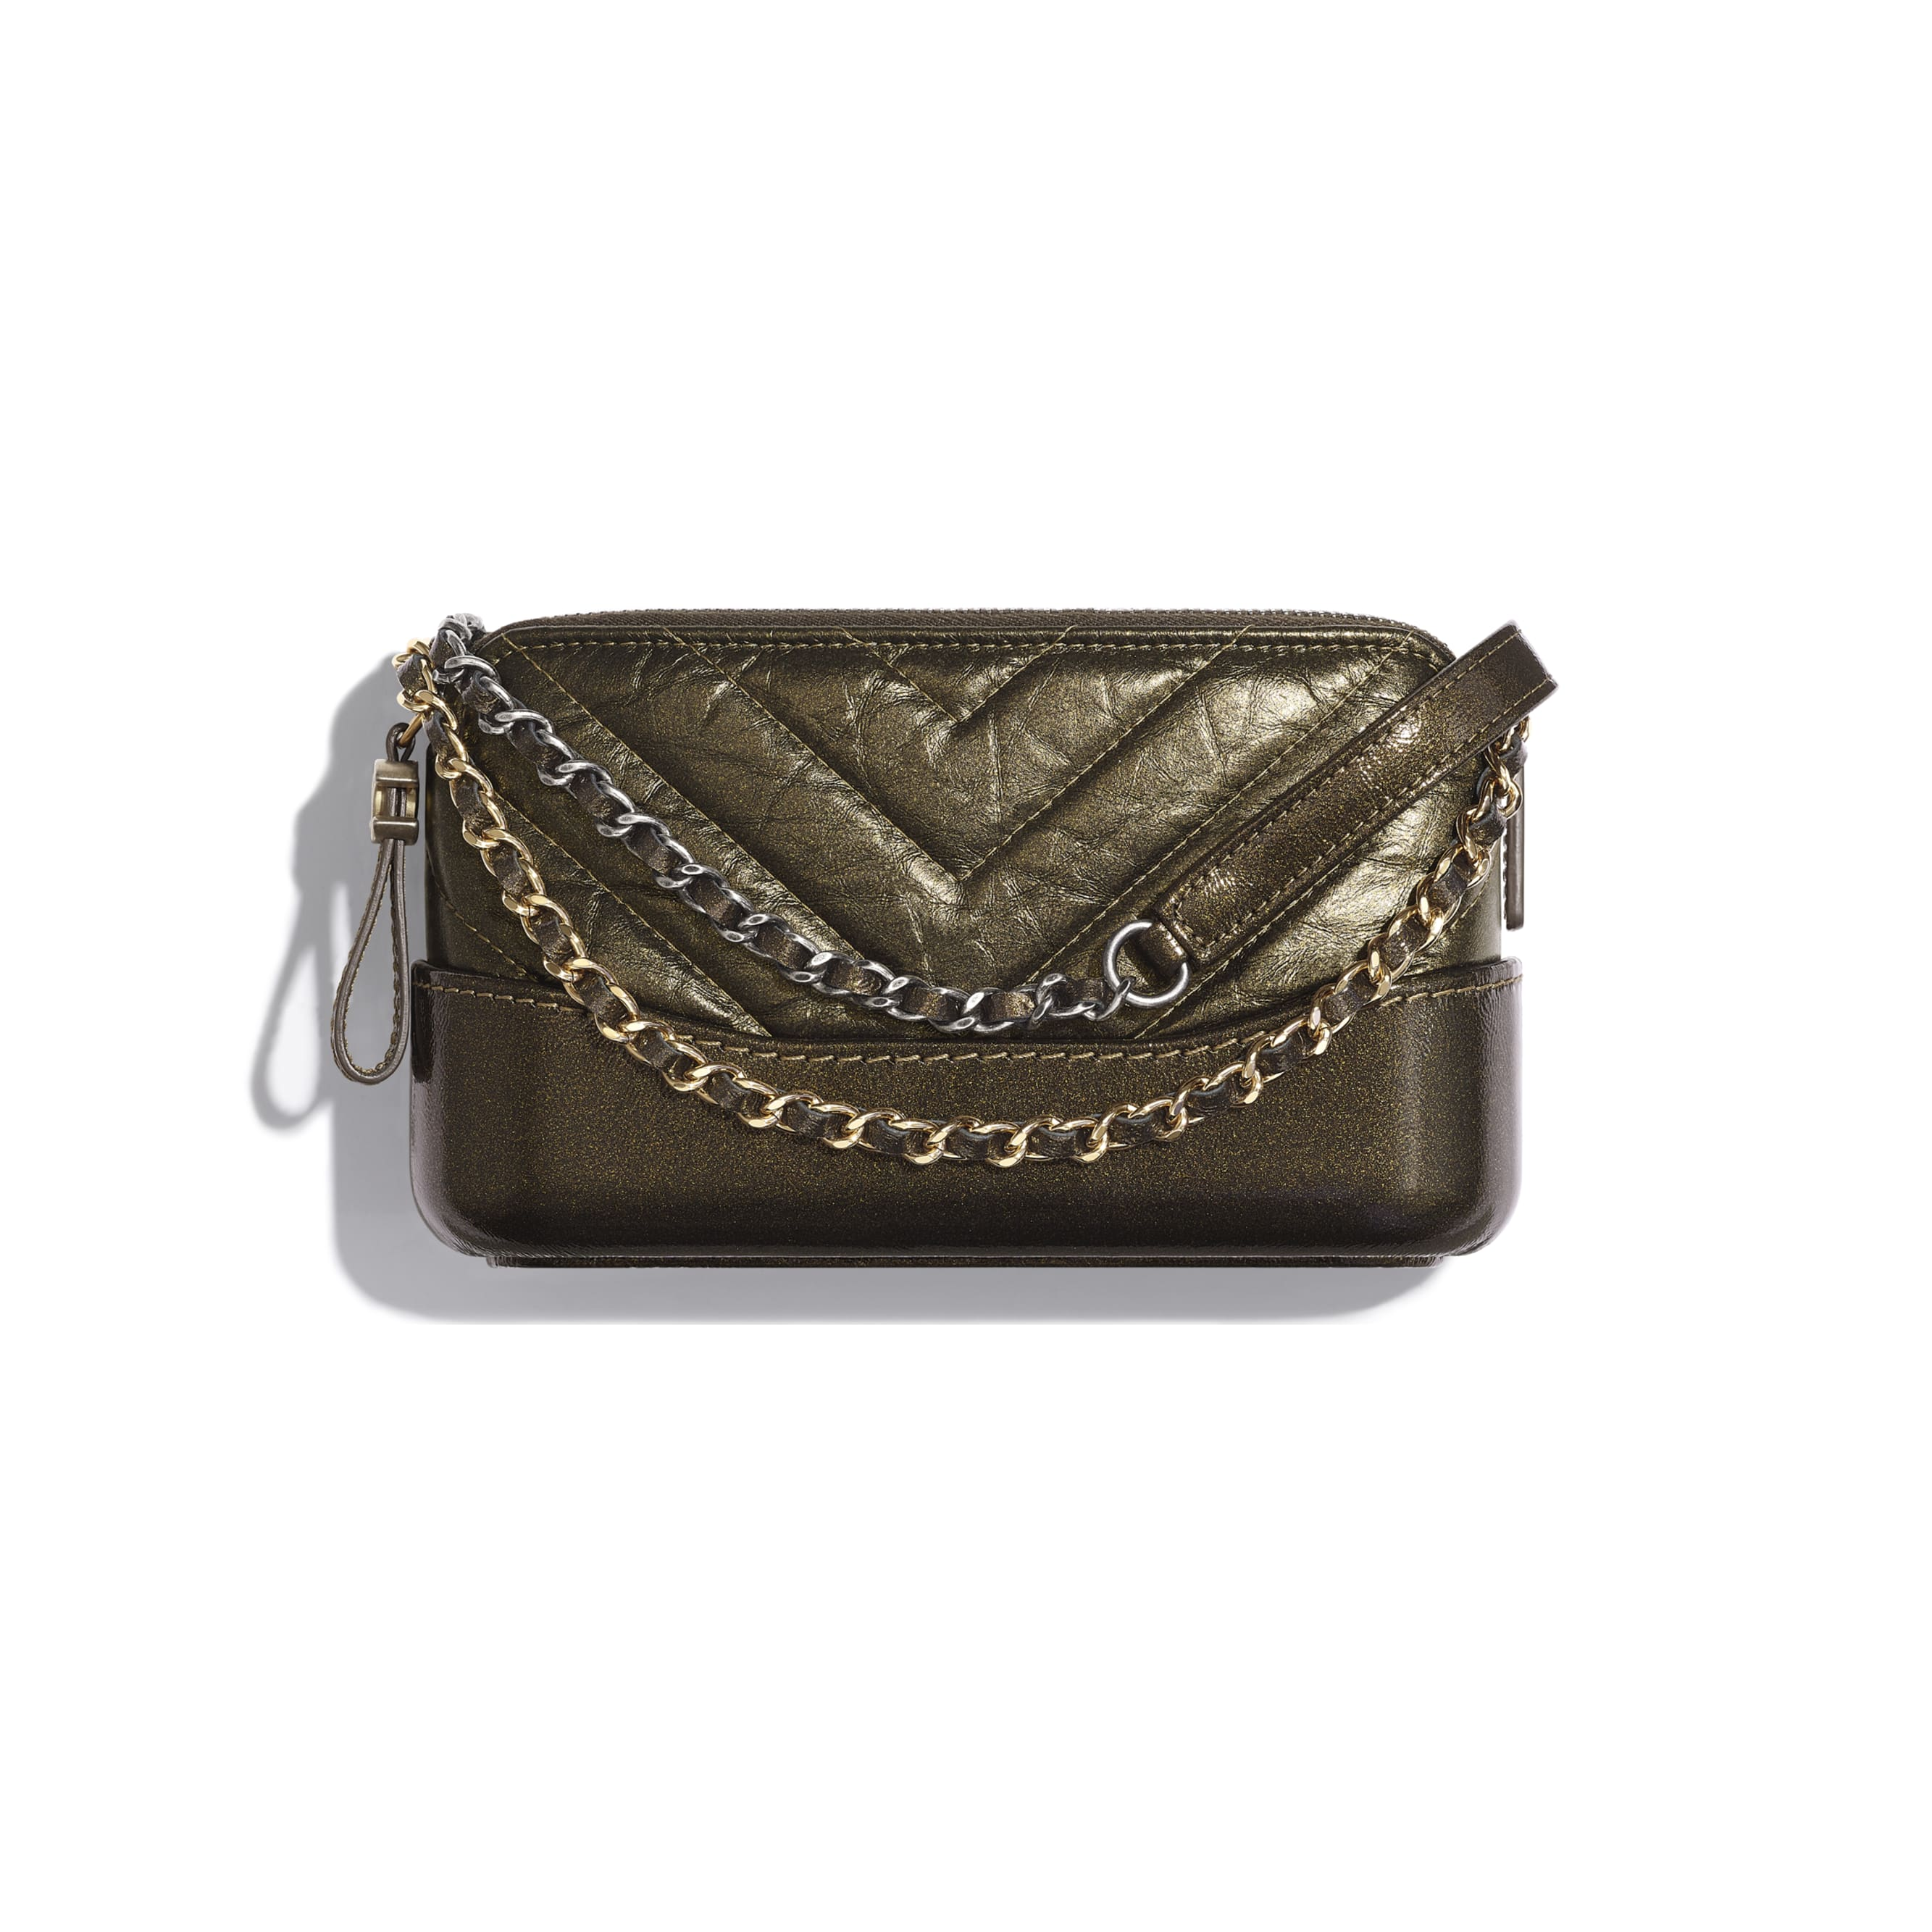 Clutch With Chain - Gold - Glittered Aged Calfskin, Gold-Tone & Silver-Tone Metal - CHANEL - Default view - see standard sized version